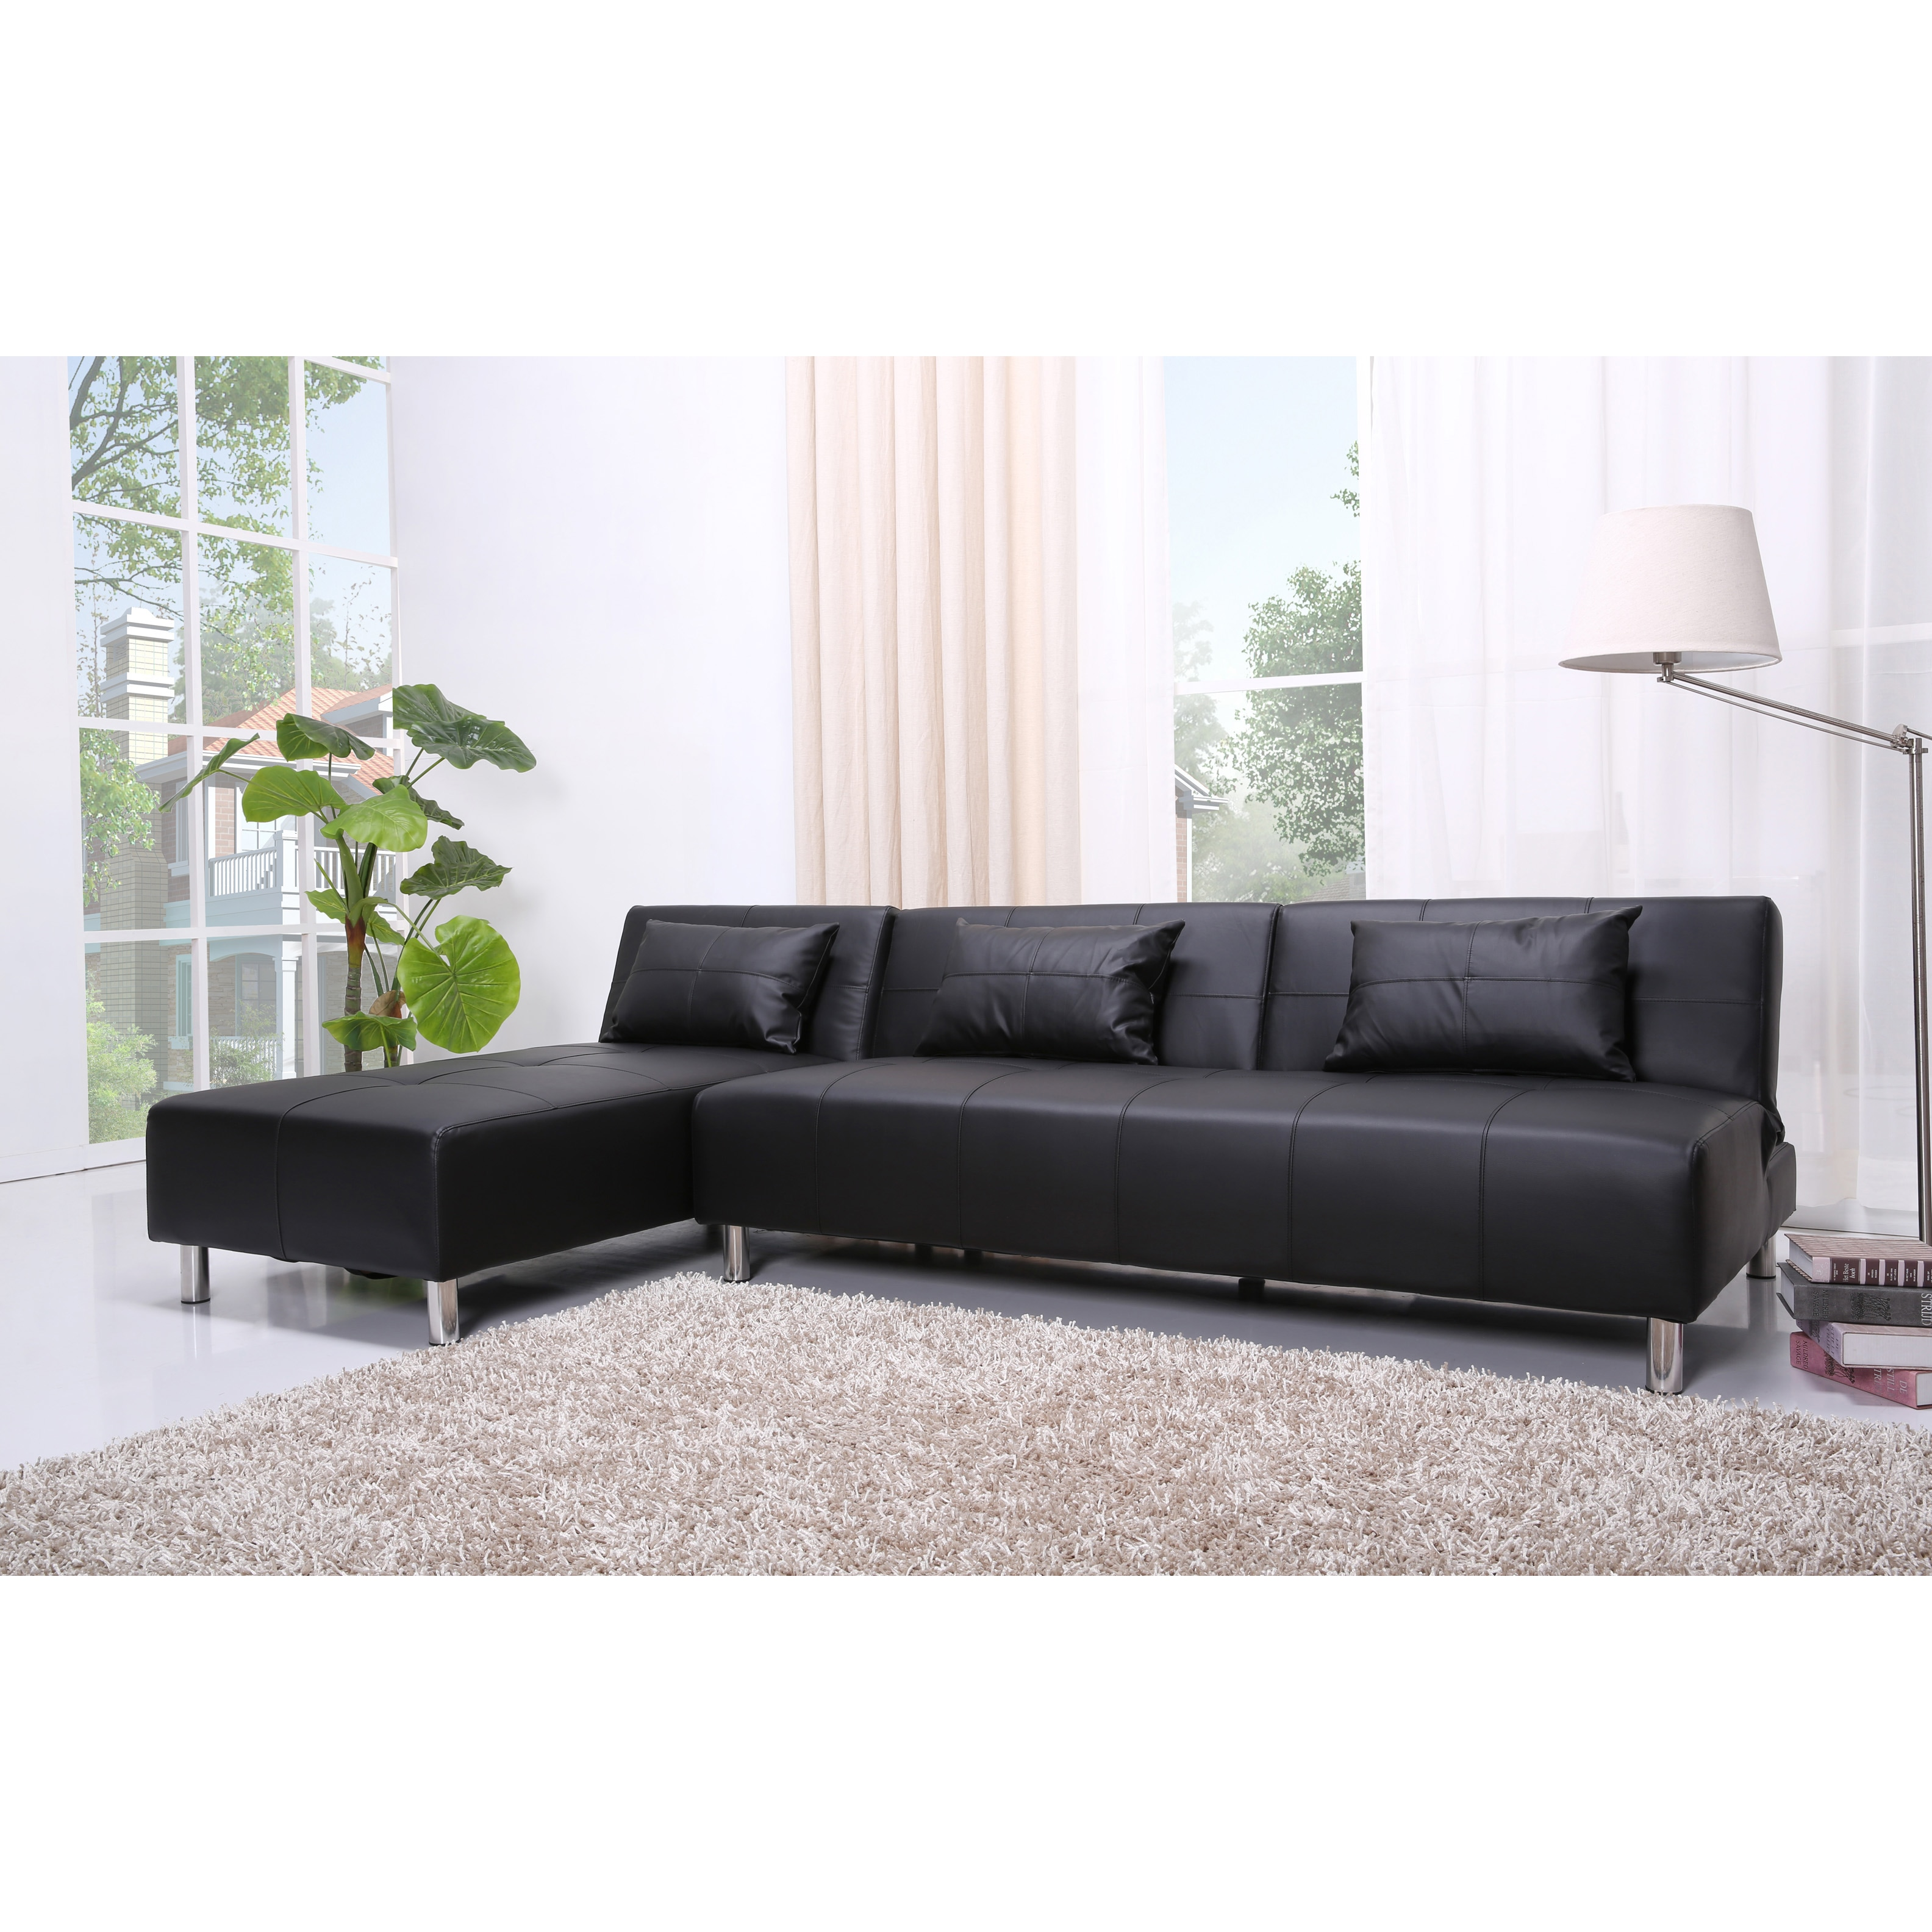 Atlanta Black Faux Leather Convertible Sectional Sofa Bed Free Shipping Today Com 6836293